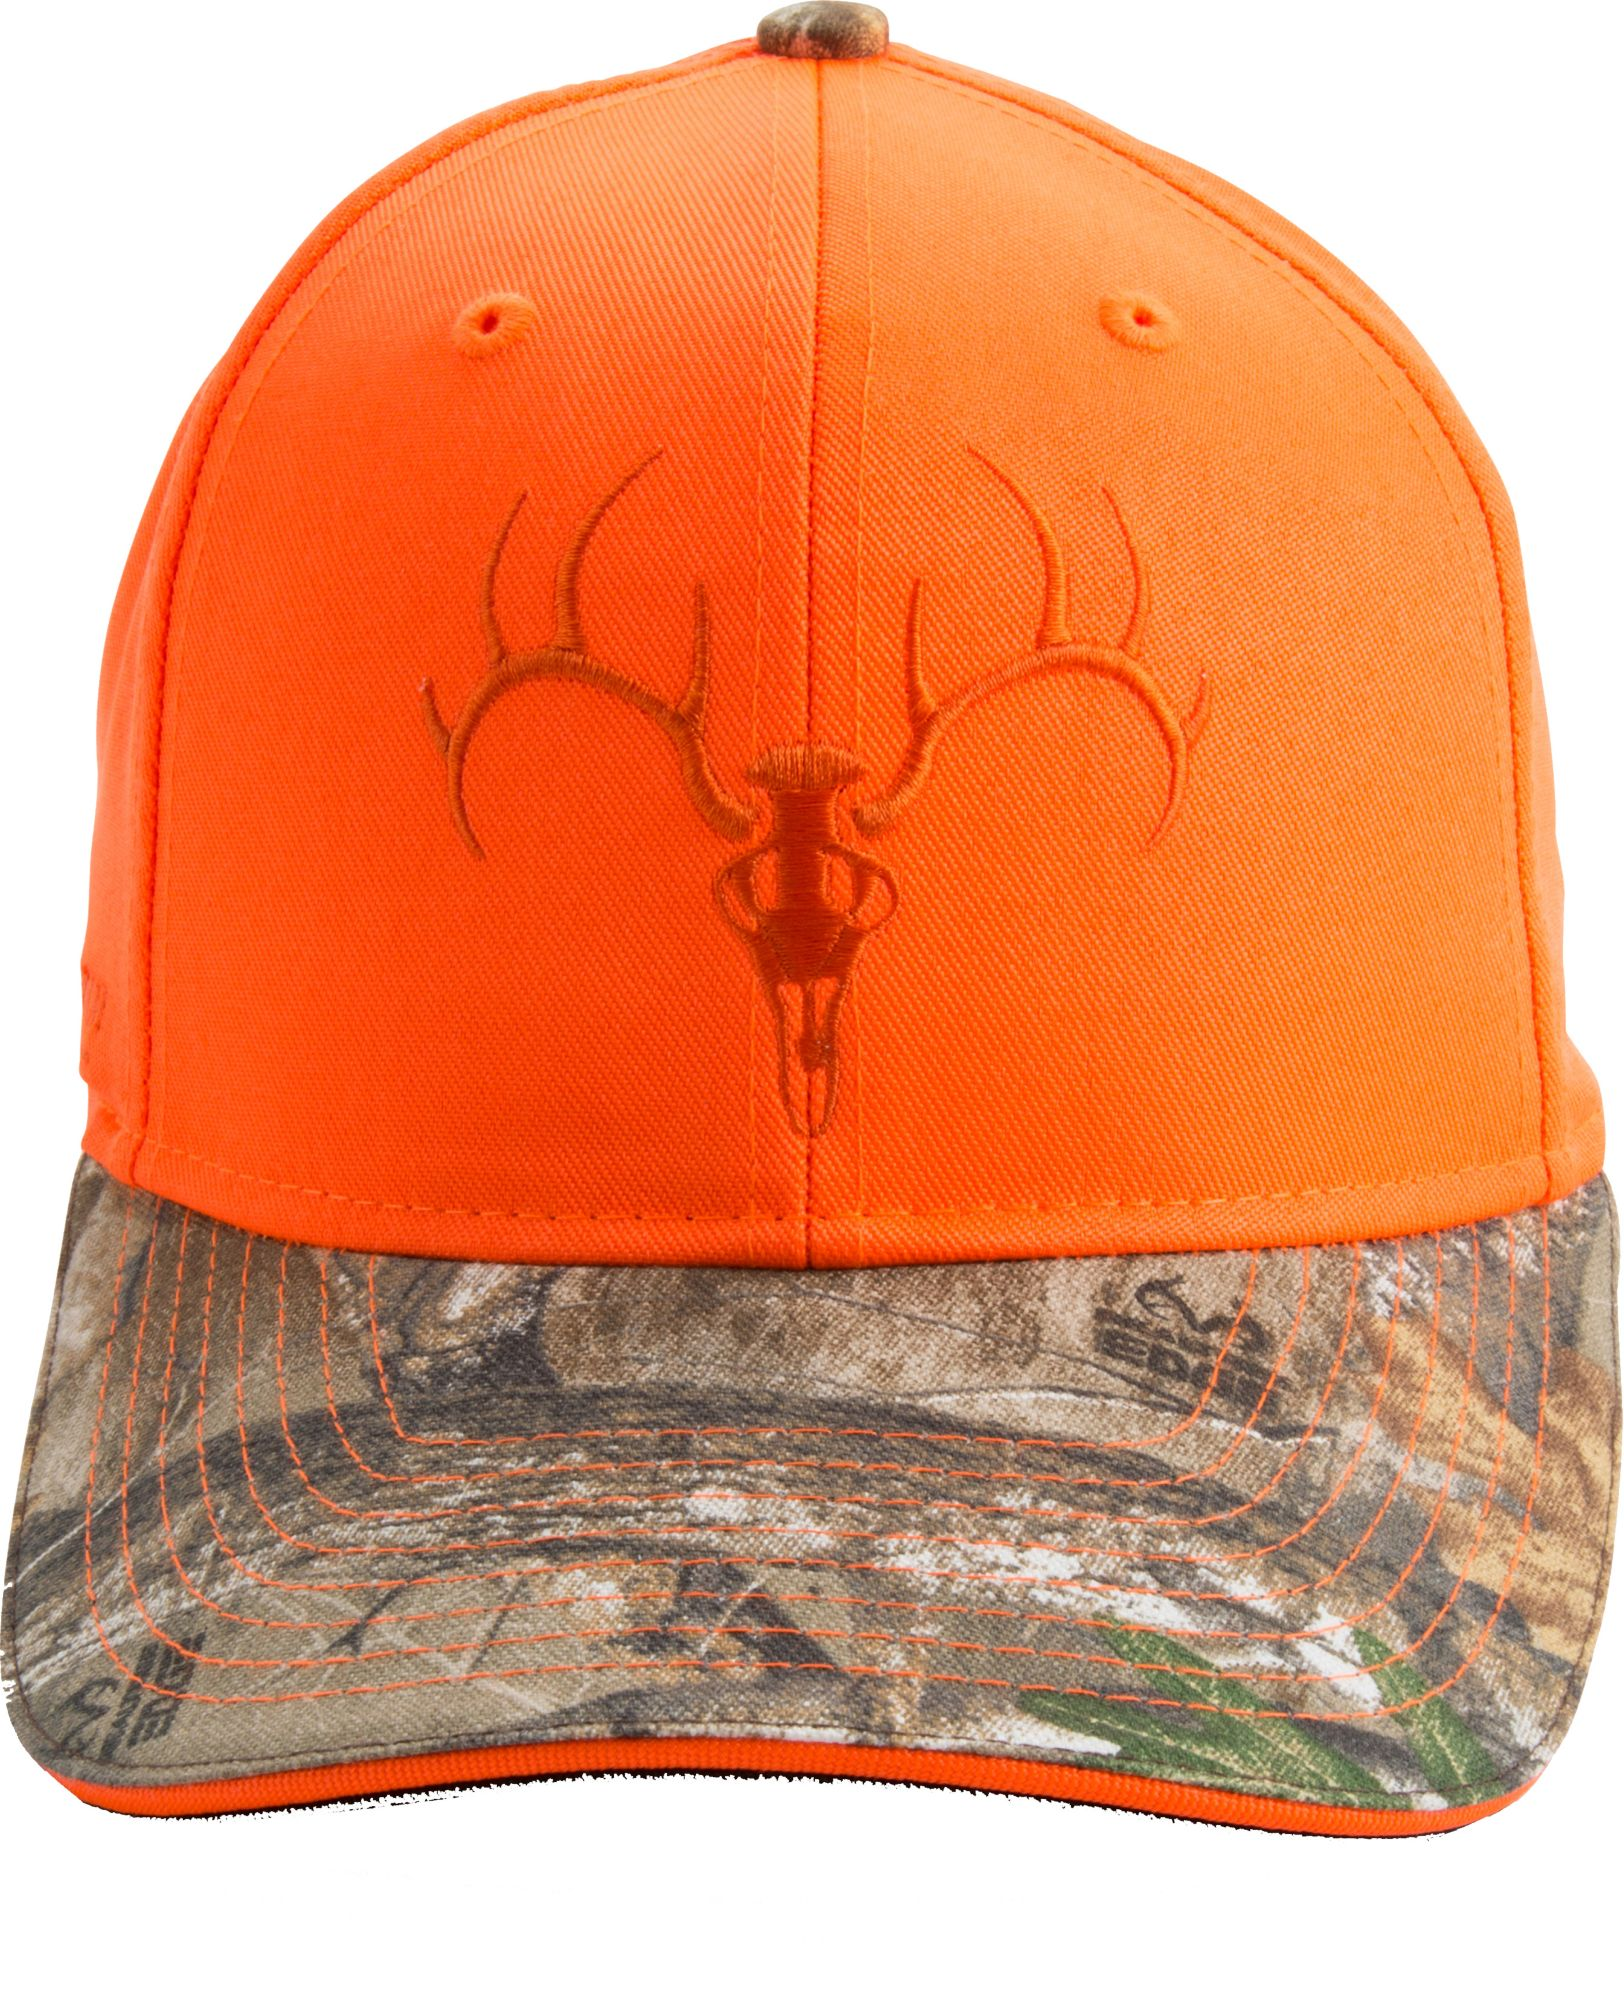 Field & Stream Men's Blaze Embroidered Skull Hat, Orange thumbnail